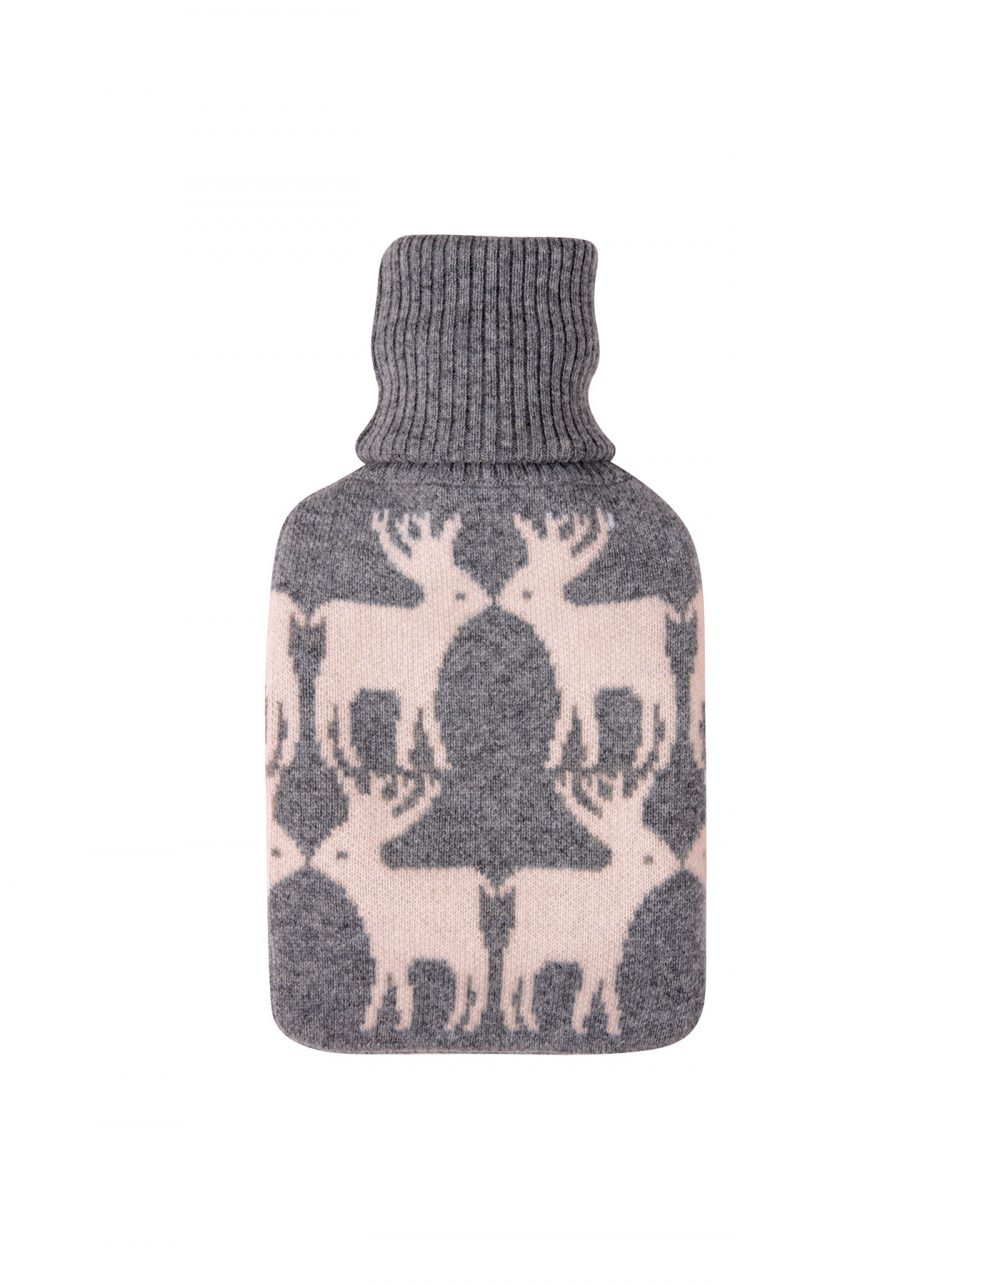 Malin darlin cashmere hot water bottle, laid flat on a white background.